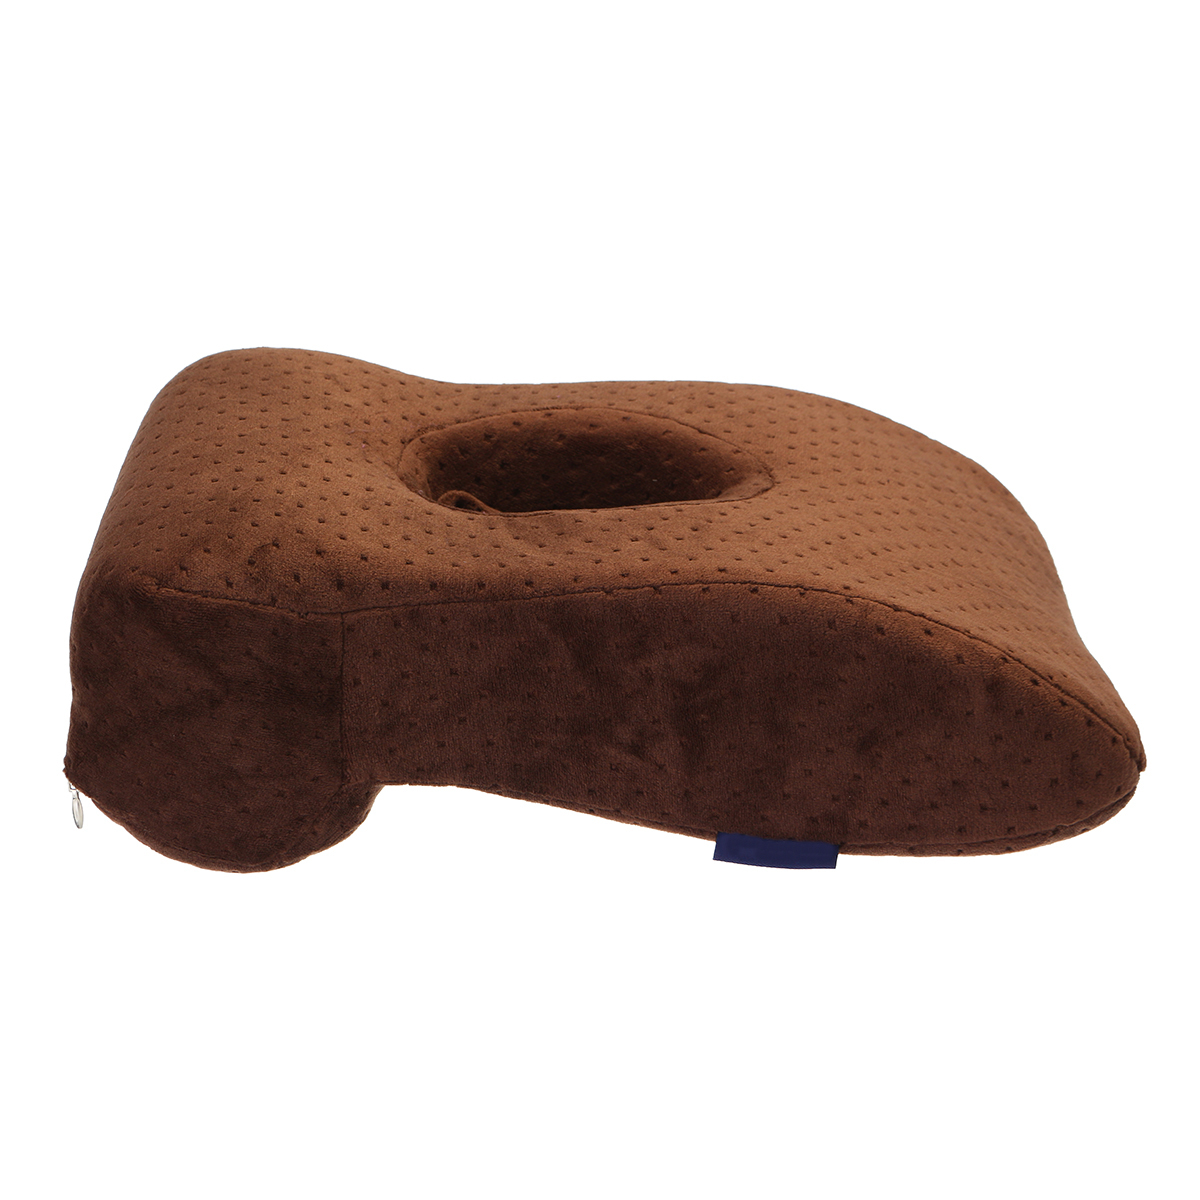 Memory Foam Pillow Table Rest Sleeping Soft Cushion